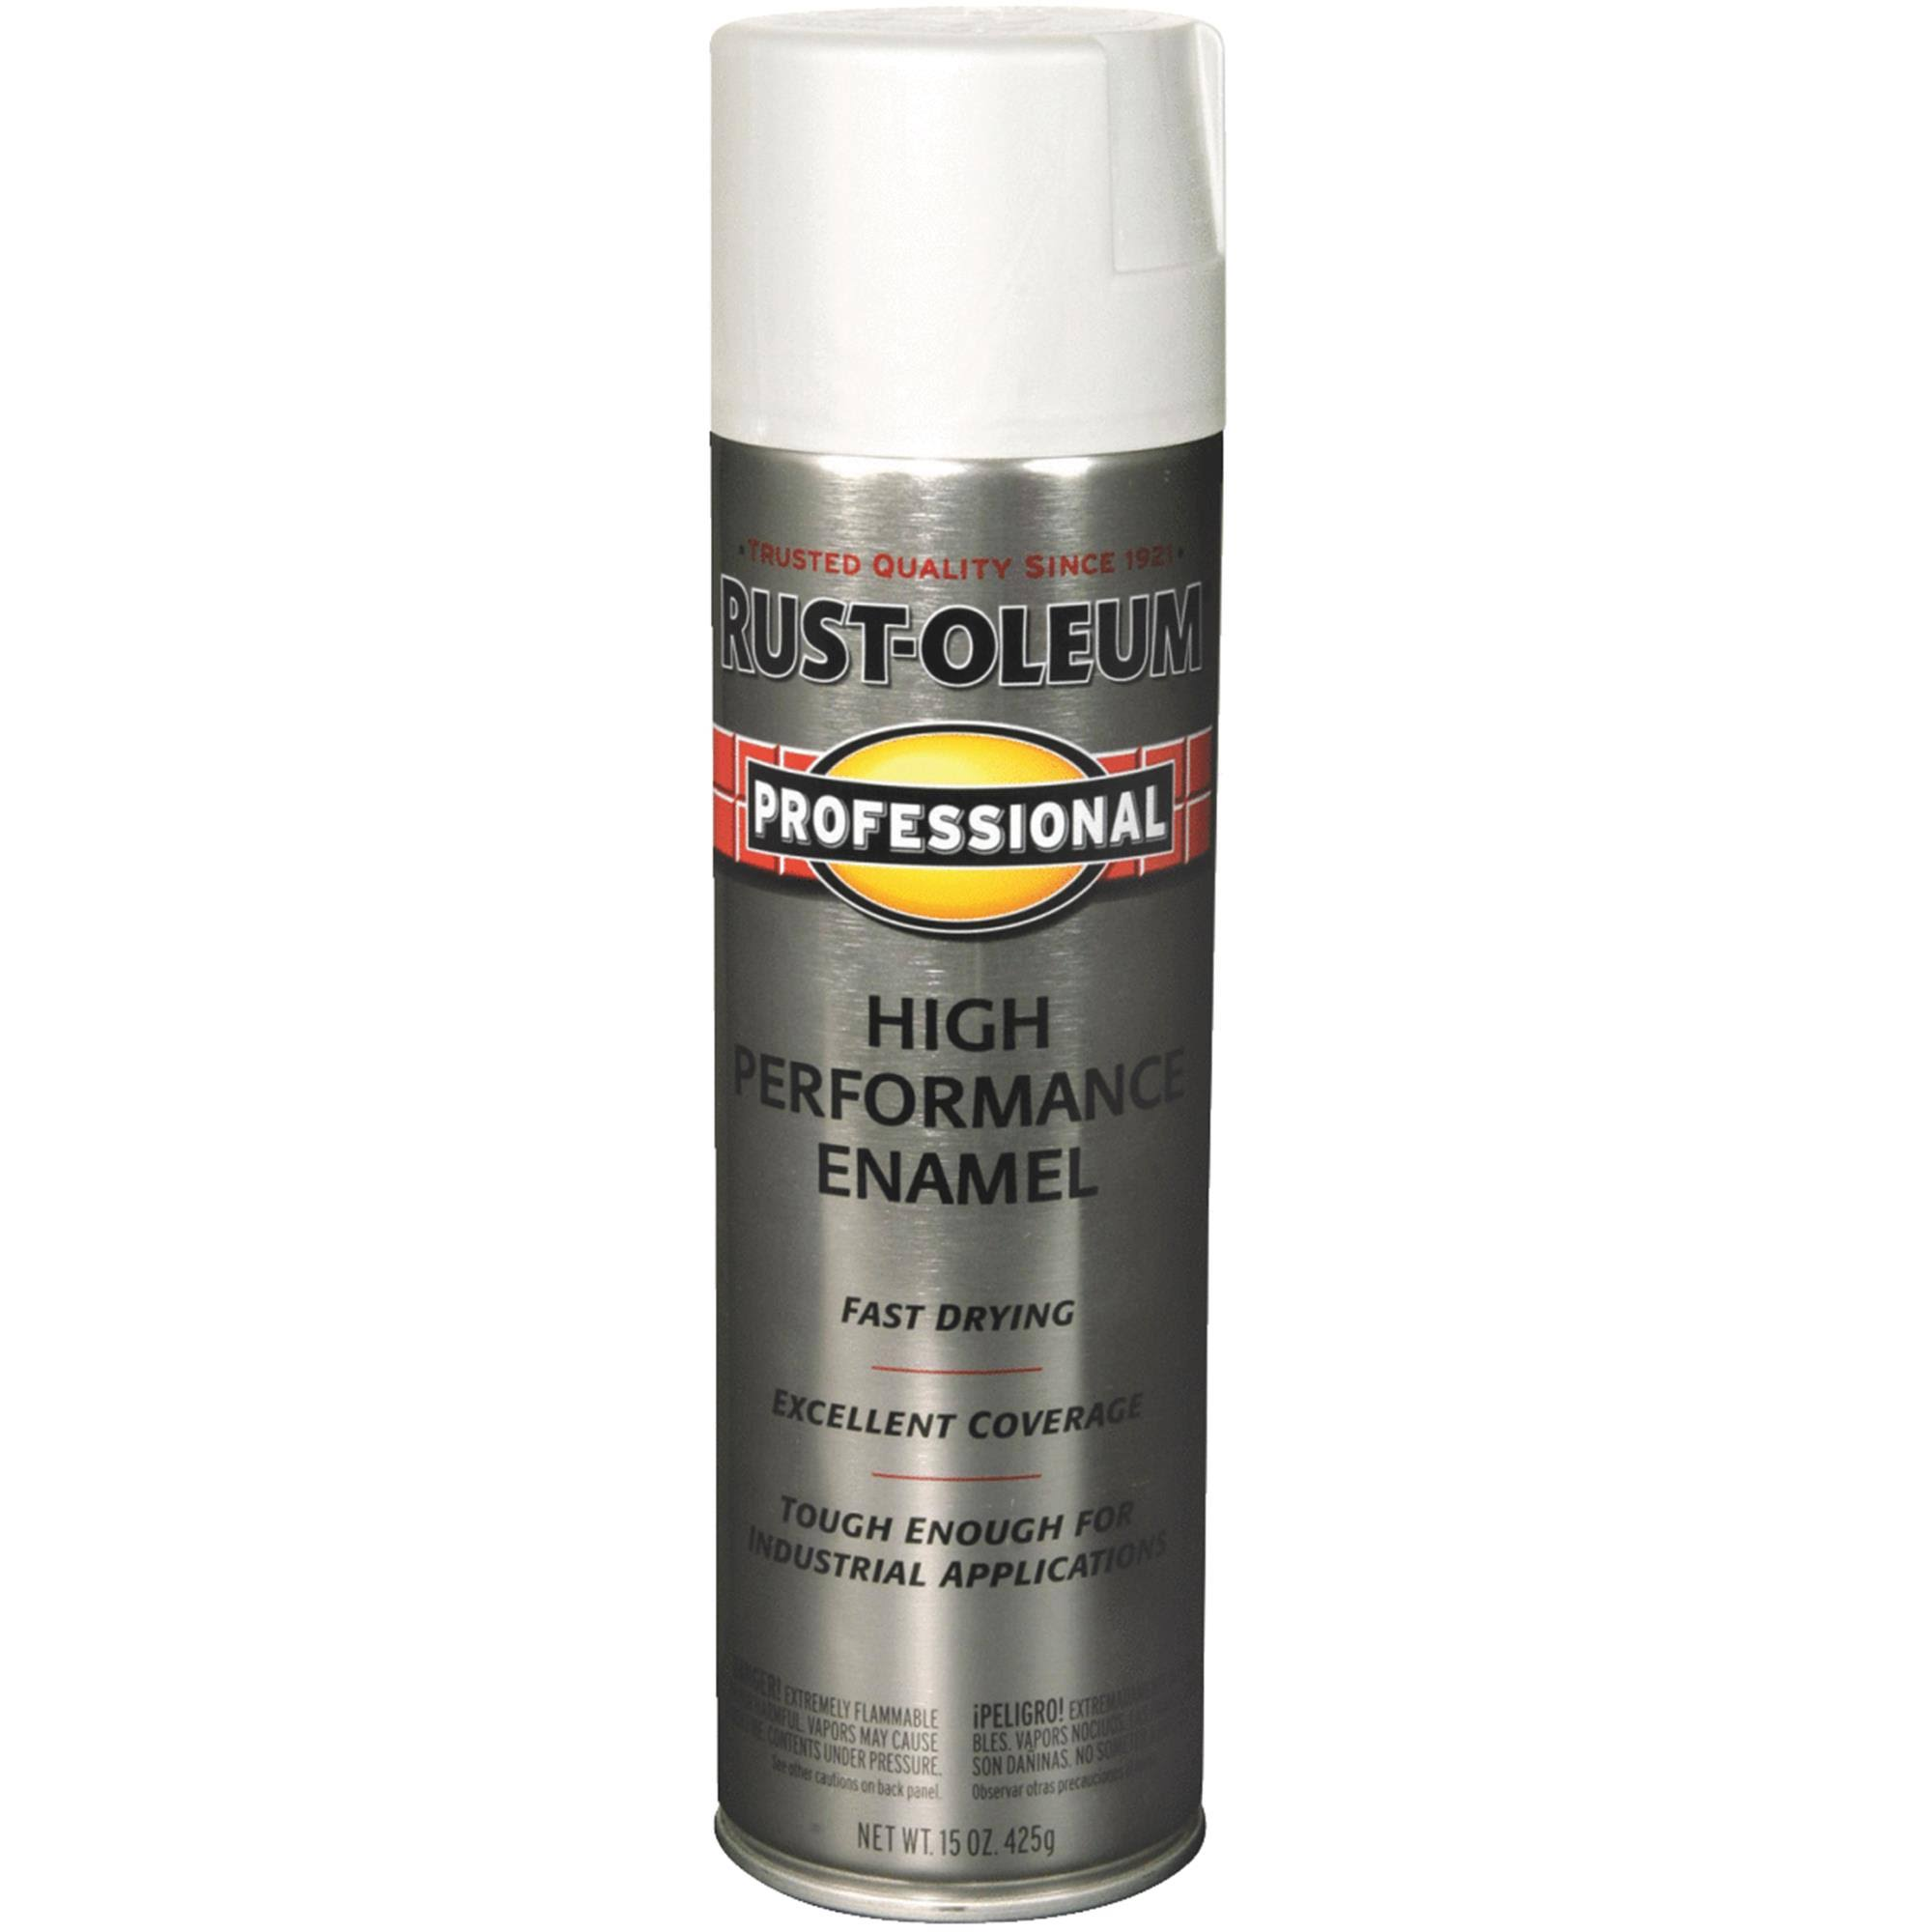 Rust-Oleum 7592838 Professional High Performance Enamel Spray Paint - Gloss White, 15oz